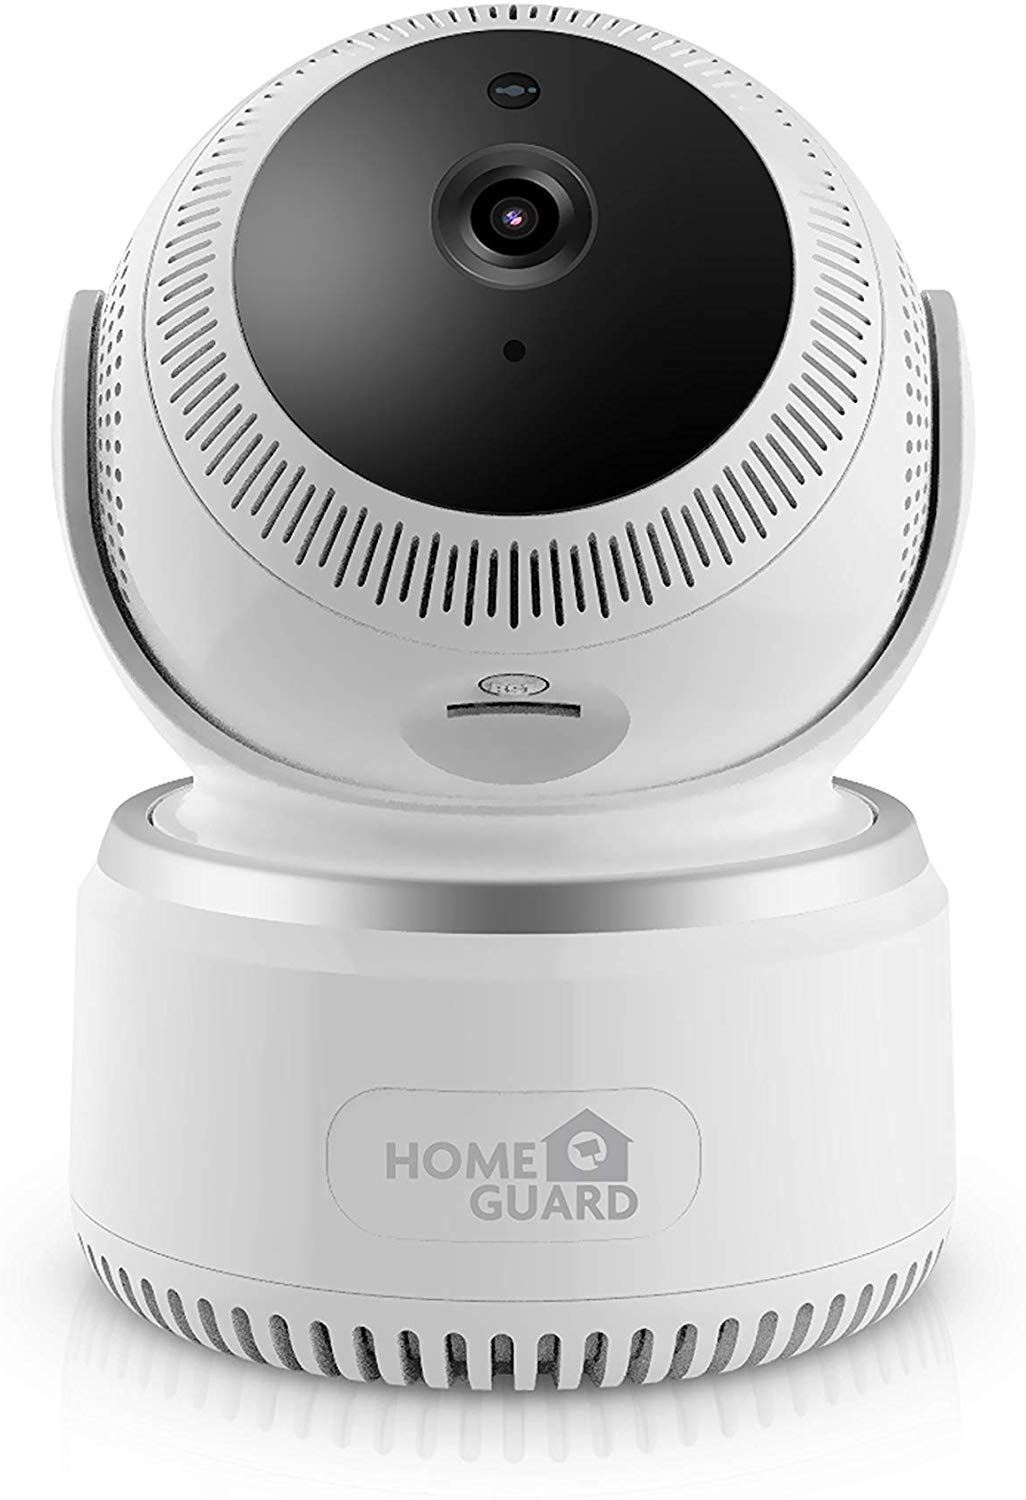 Picture of HomeGuard 1080P Pan & Tilt IP Camera